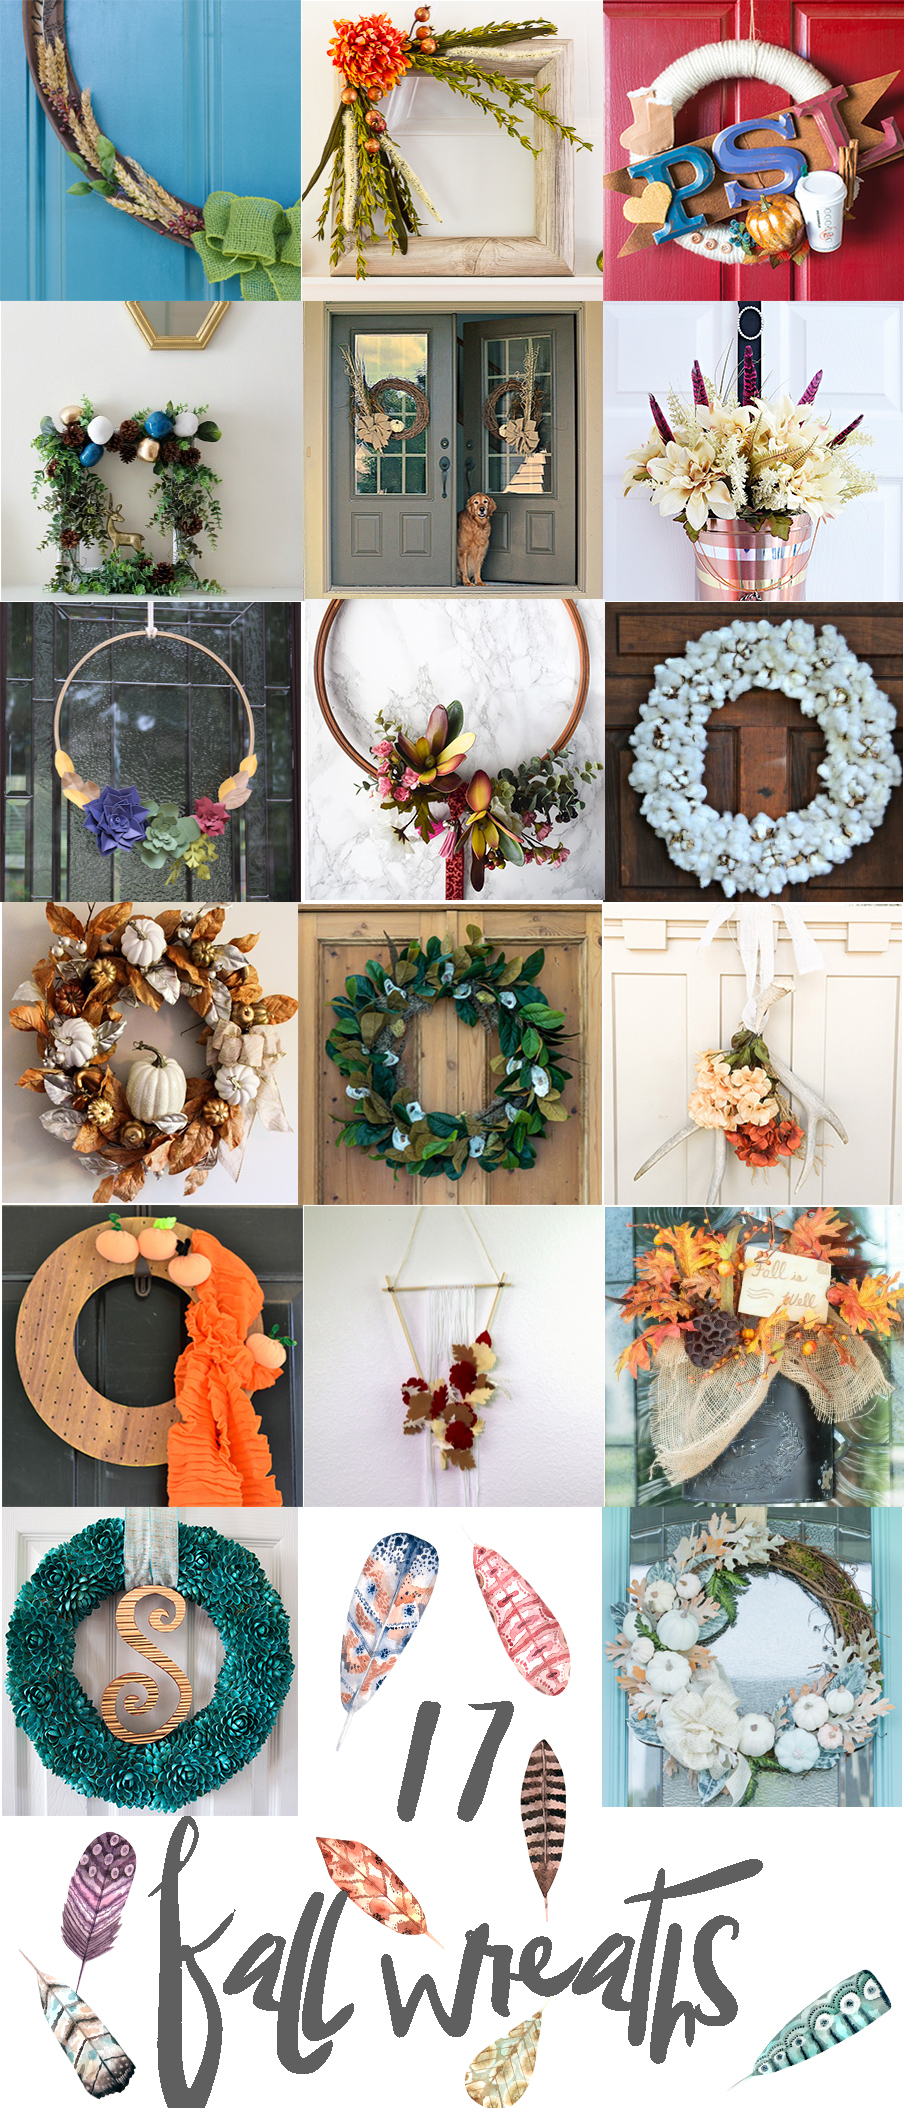 Check out all this lovely fall door decor. There are so many great ideas, from traditional wreaths to seasonal alternatives.